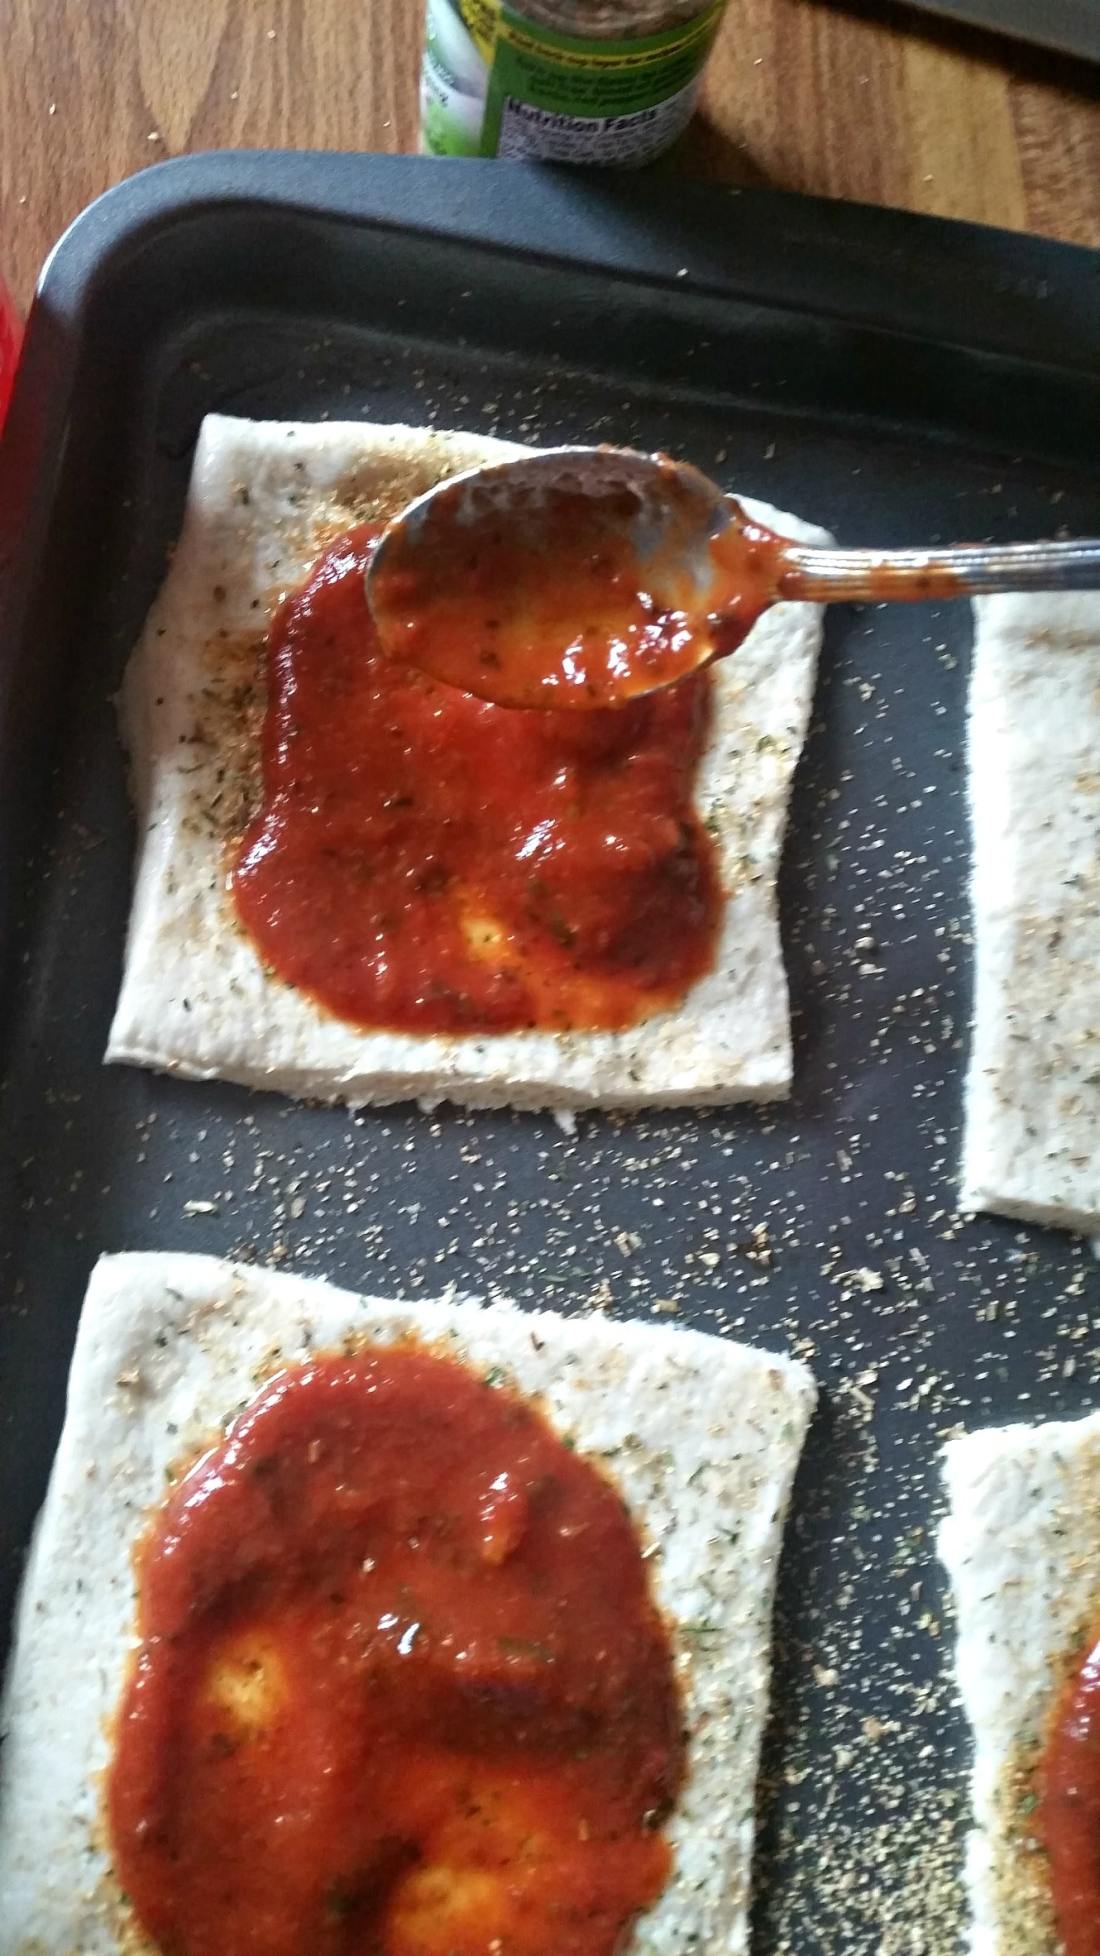 mini babybel pizzas crust with sauce. Bake up some kid-friendly mini babybel pizzas. They are perfect for quick weeknight dinners or easy to make weekend meals.